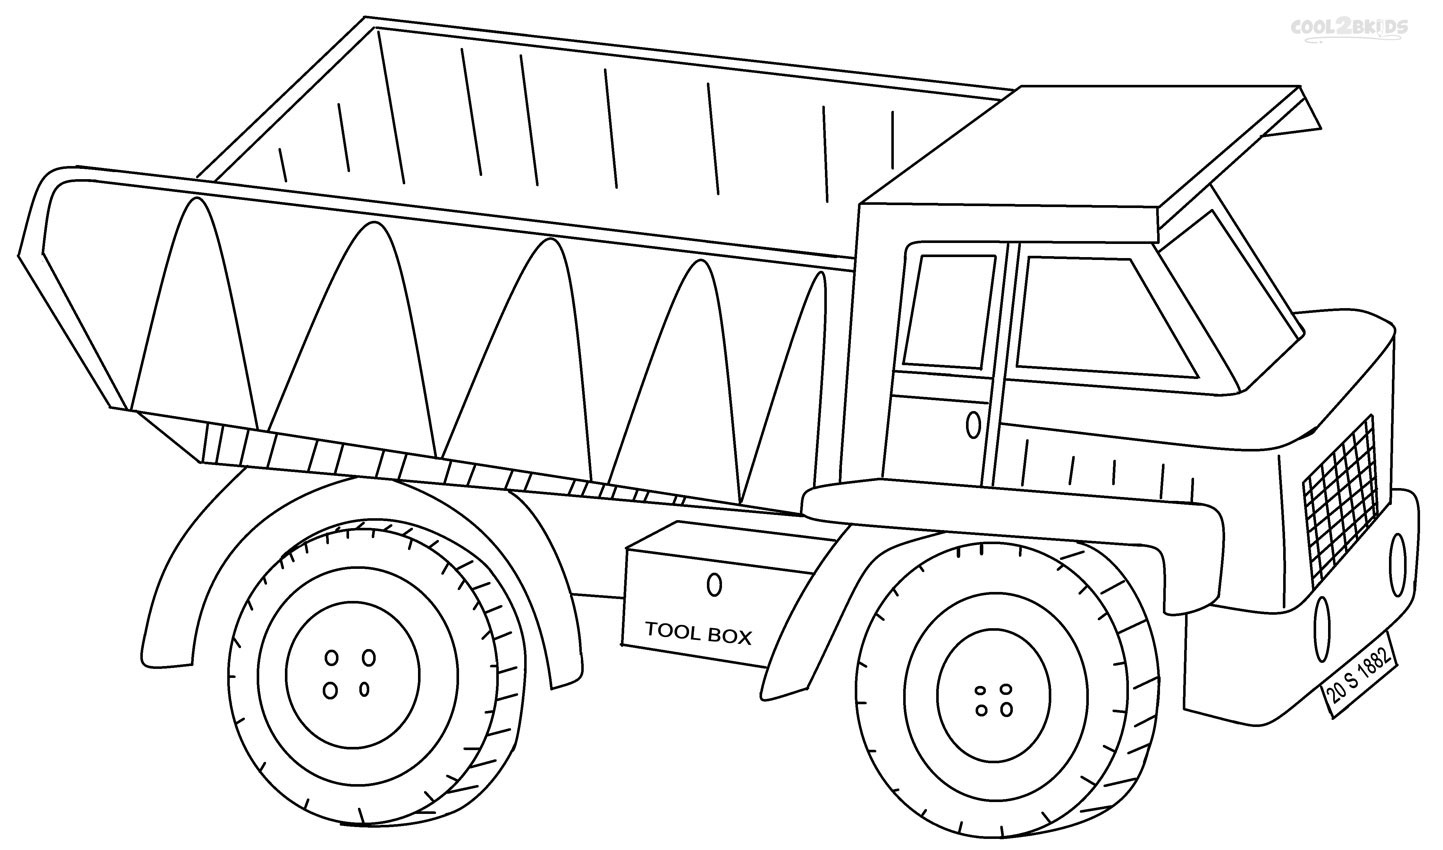 coloring pages for kids truck semi truck coloring pages to download and print for free truck kids coloring pages for